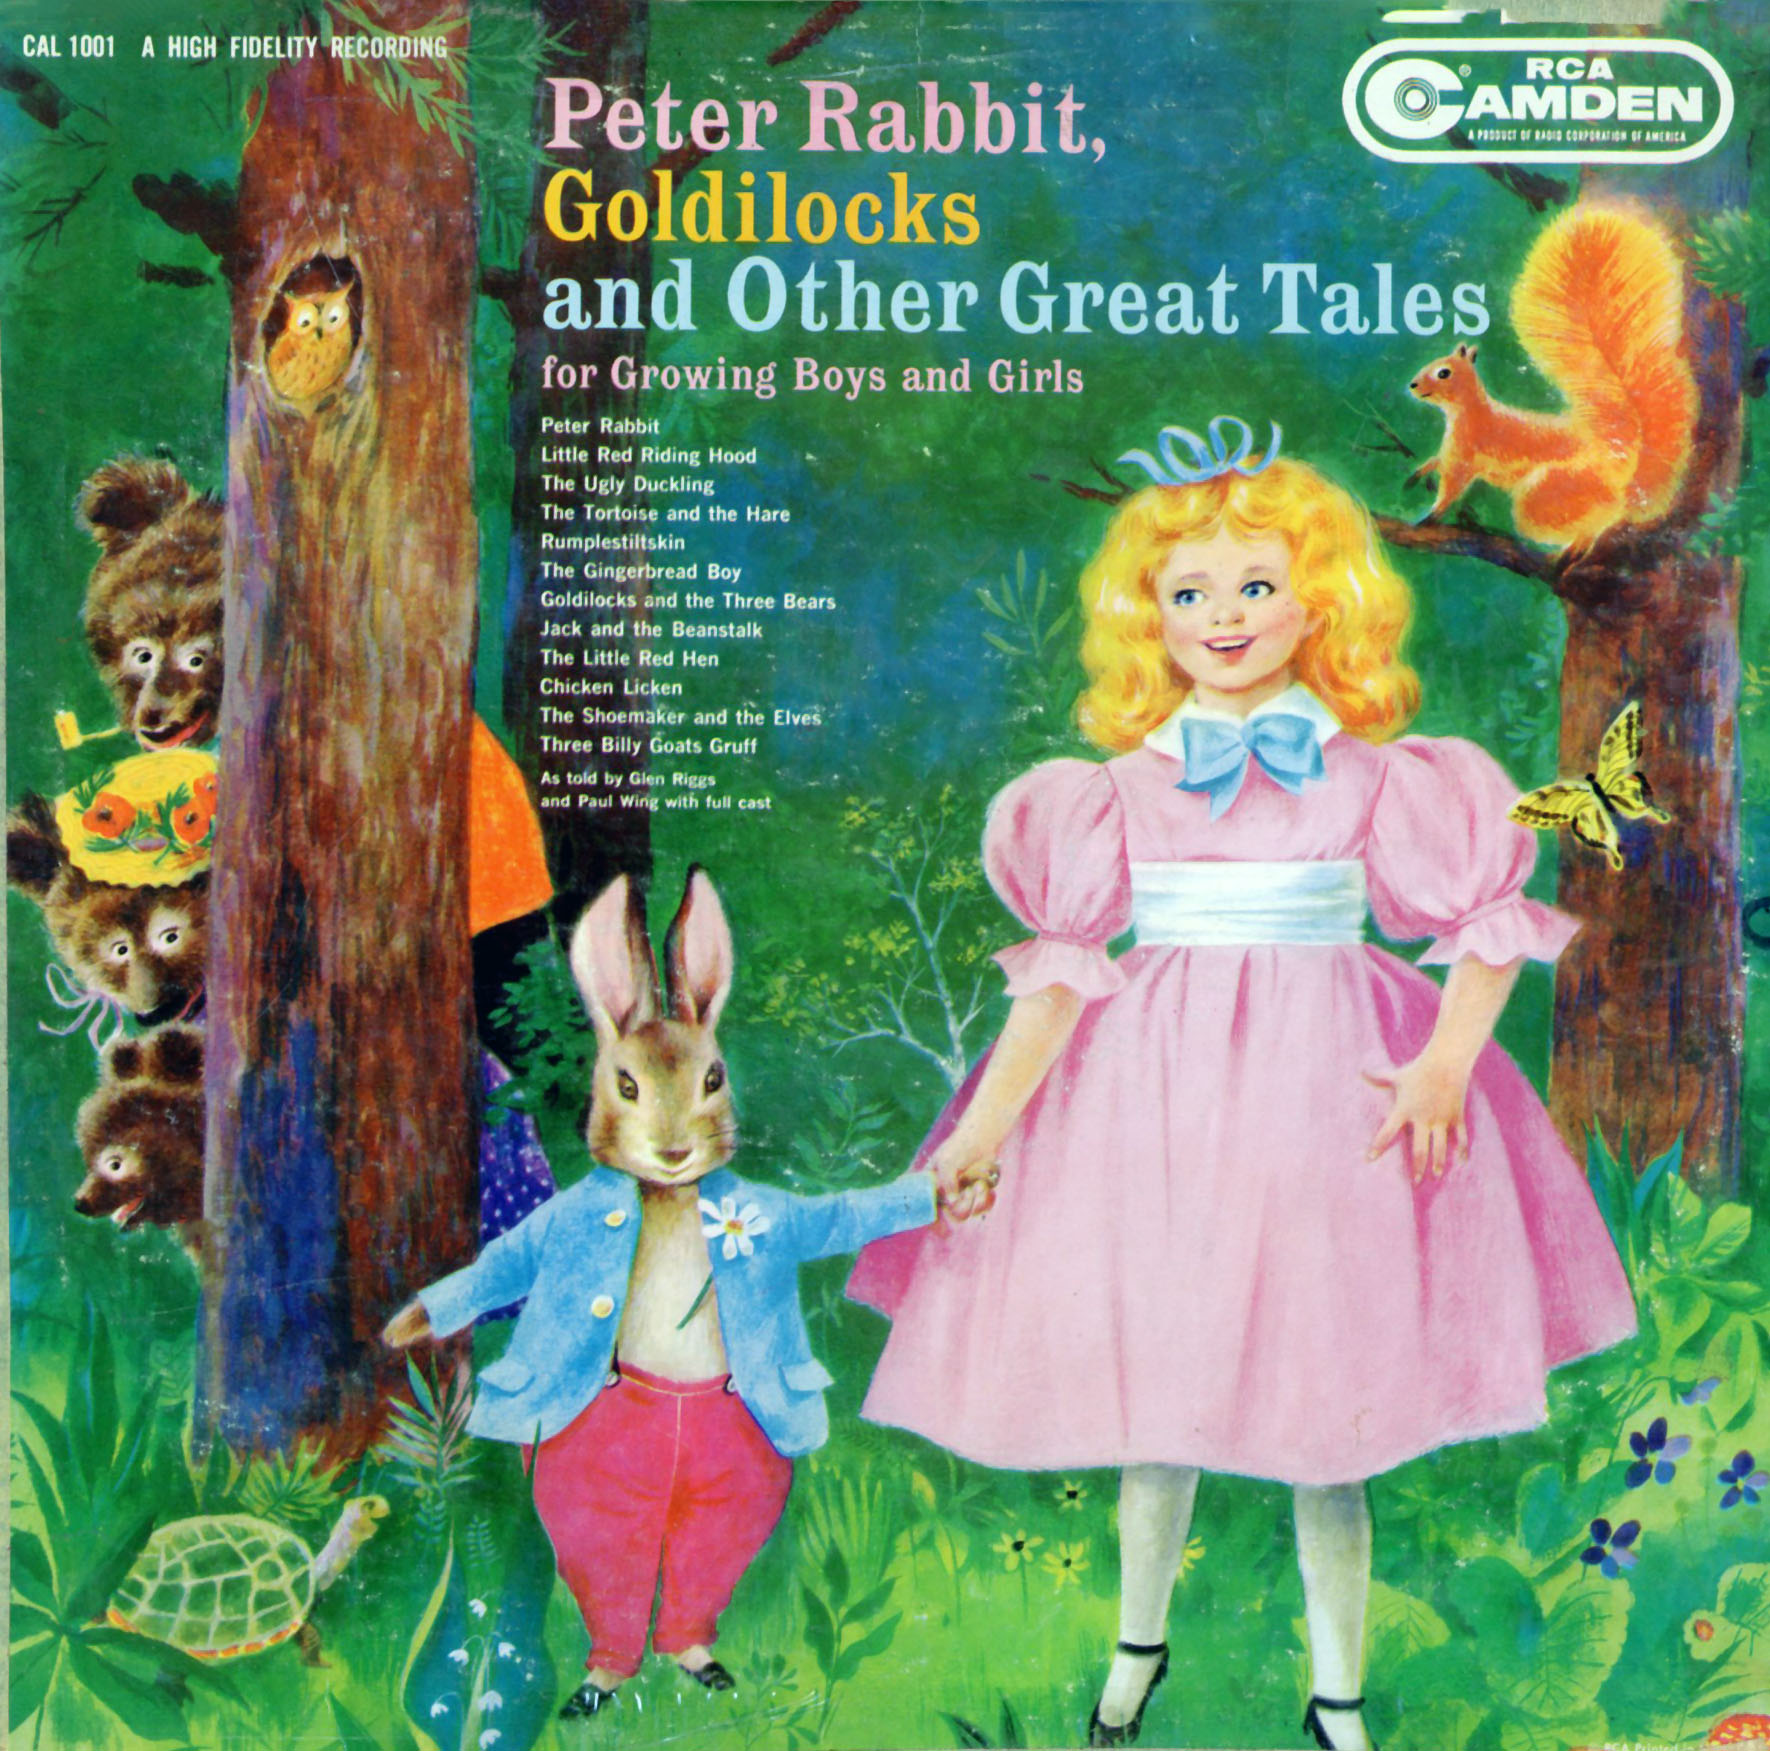 CAL1001 - Peter Rabbit, Goldilocks and Other Tales for Growing Boys and Girls on CD